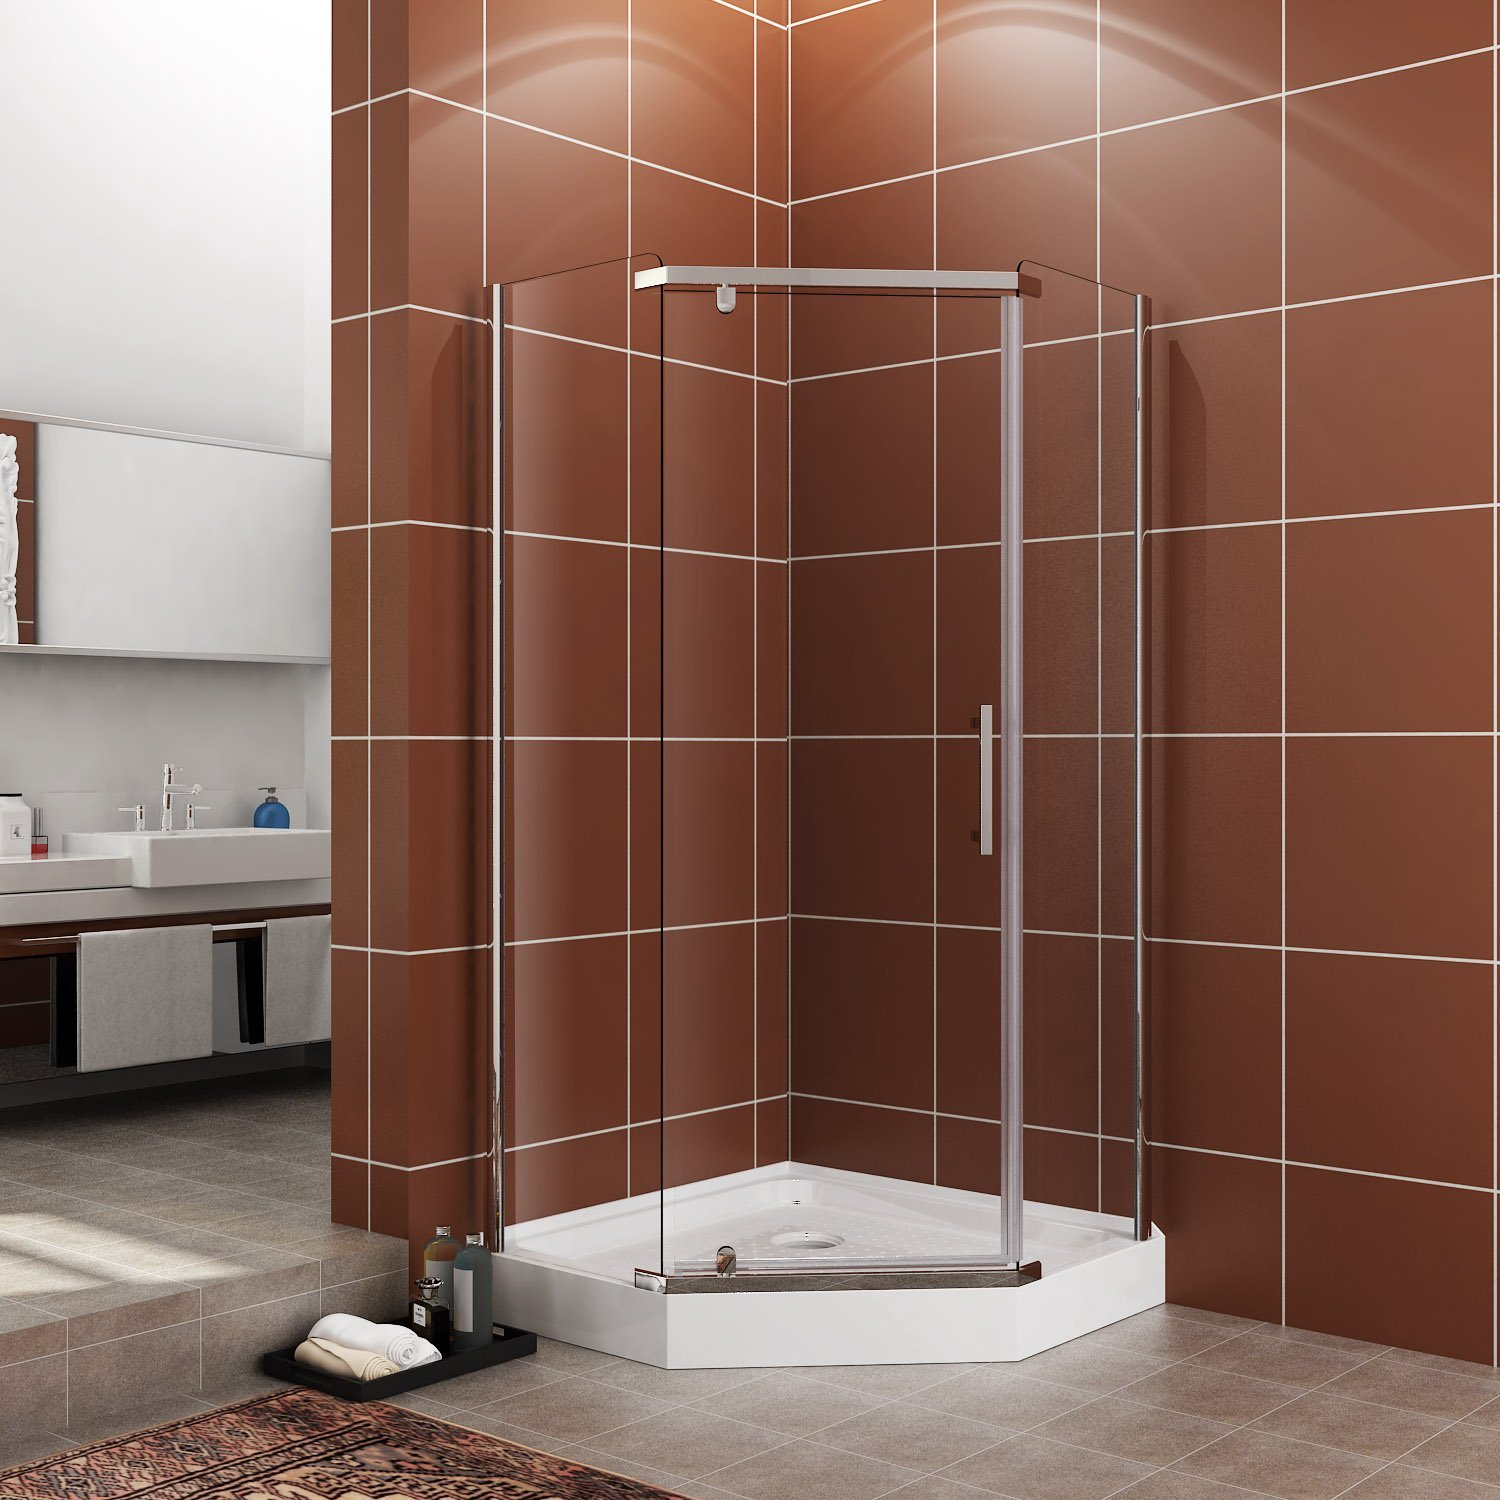 SUNNY SHOWER A33, Semi-frameless Neo-Angle Corner Shower Doors, Fit to 36 3/5'' W x 36 3/5'' D x 71 4/5'' H, 1/4'' Clear Glass, Chrome Finish- Back-wall & Shower Base Sold Separately by SUNNY SHOWER (Image #1)